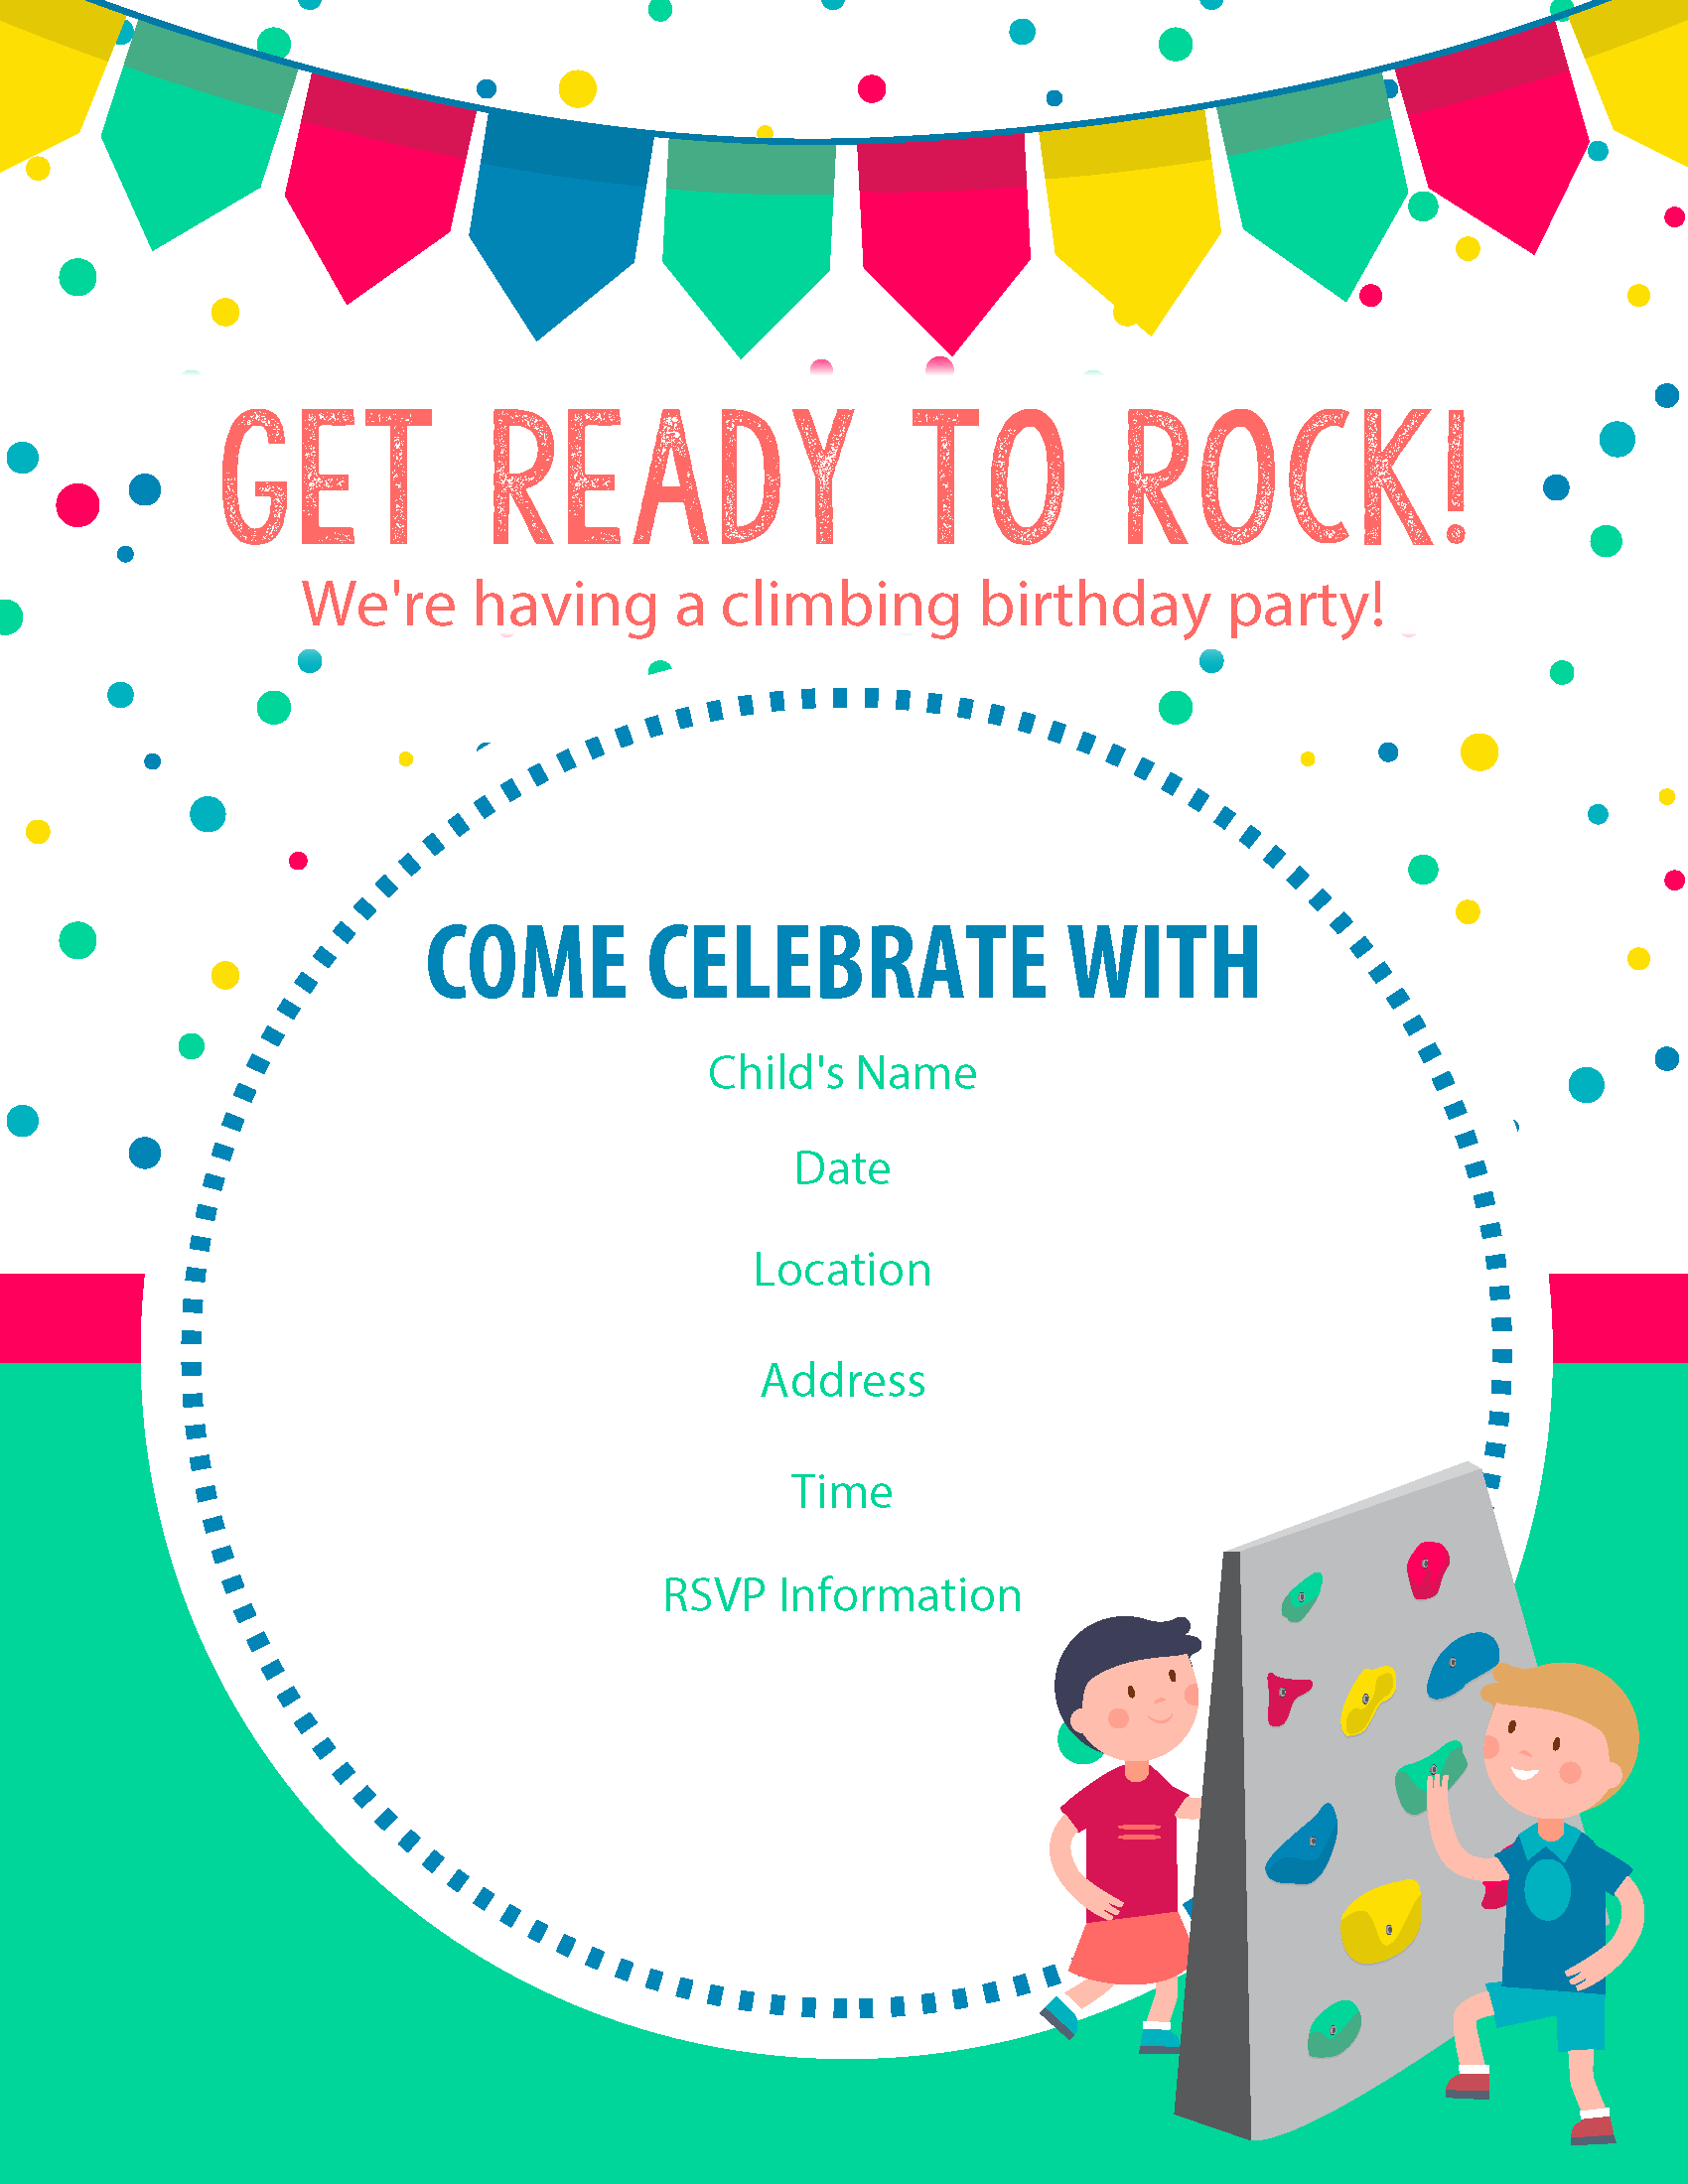 Happy birthday free rock climbing birthday party invitations one of our free rock climbing birthday party invitations stopboris